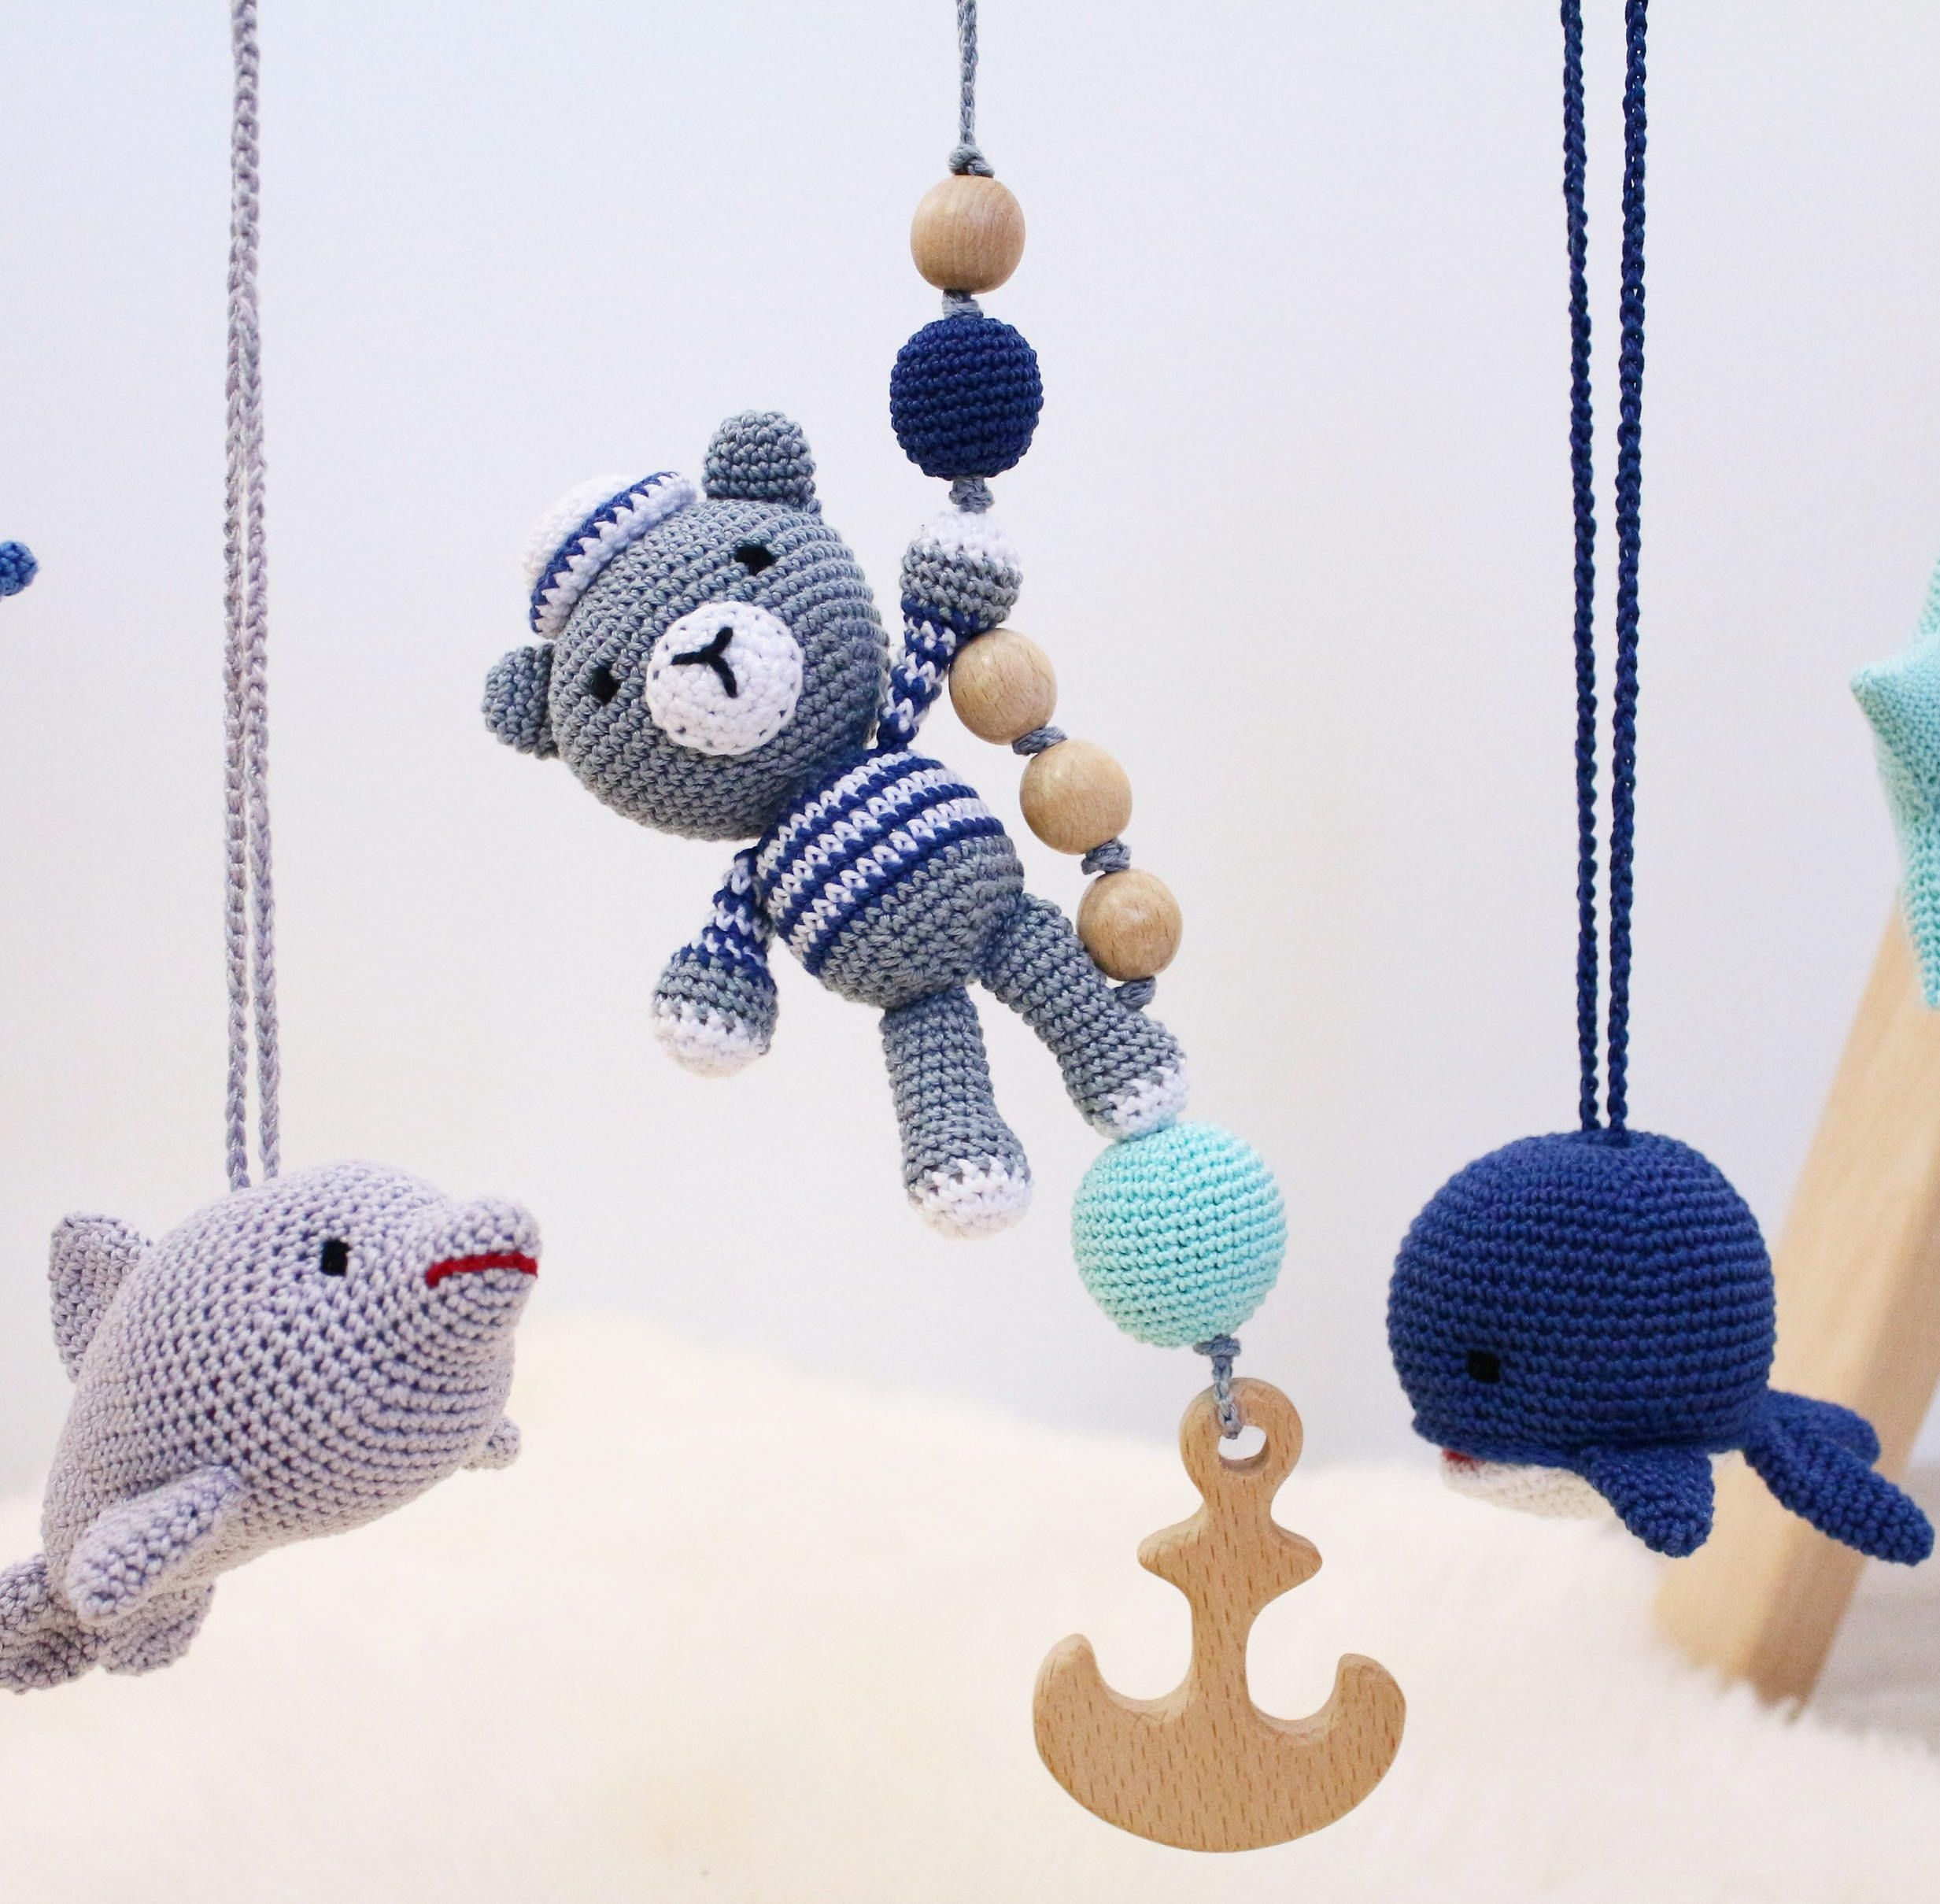 Bear the sailor baby gym toy crochet baby rattle with wooden